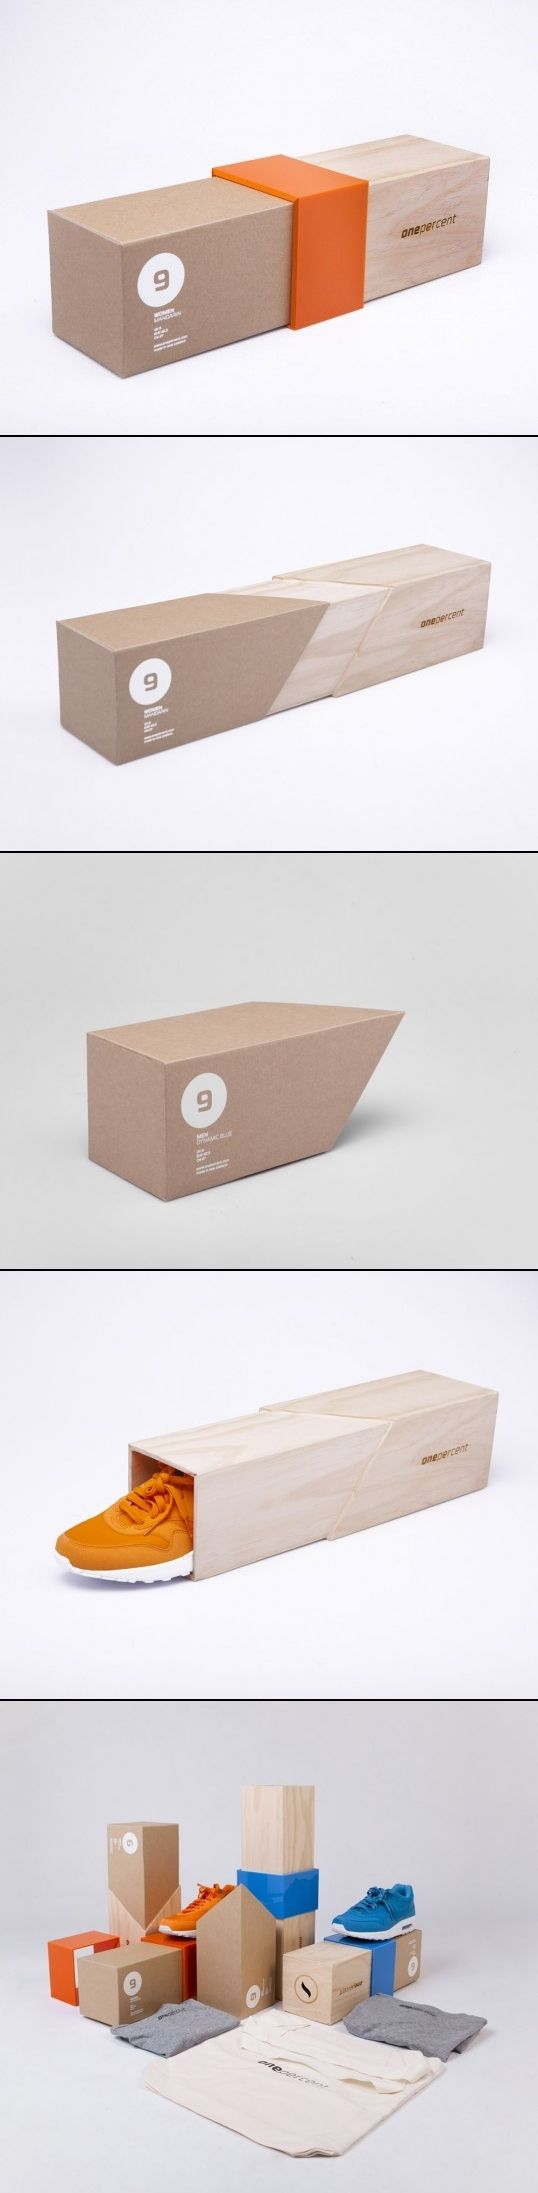 One Percent creative packaging by Ryan Romanes designer.